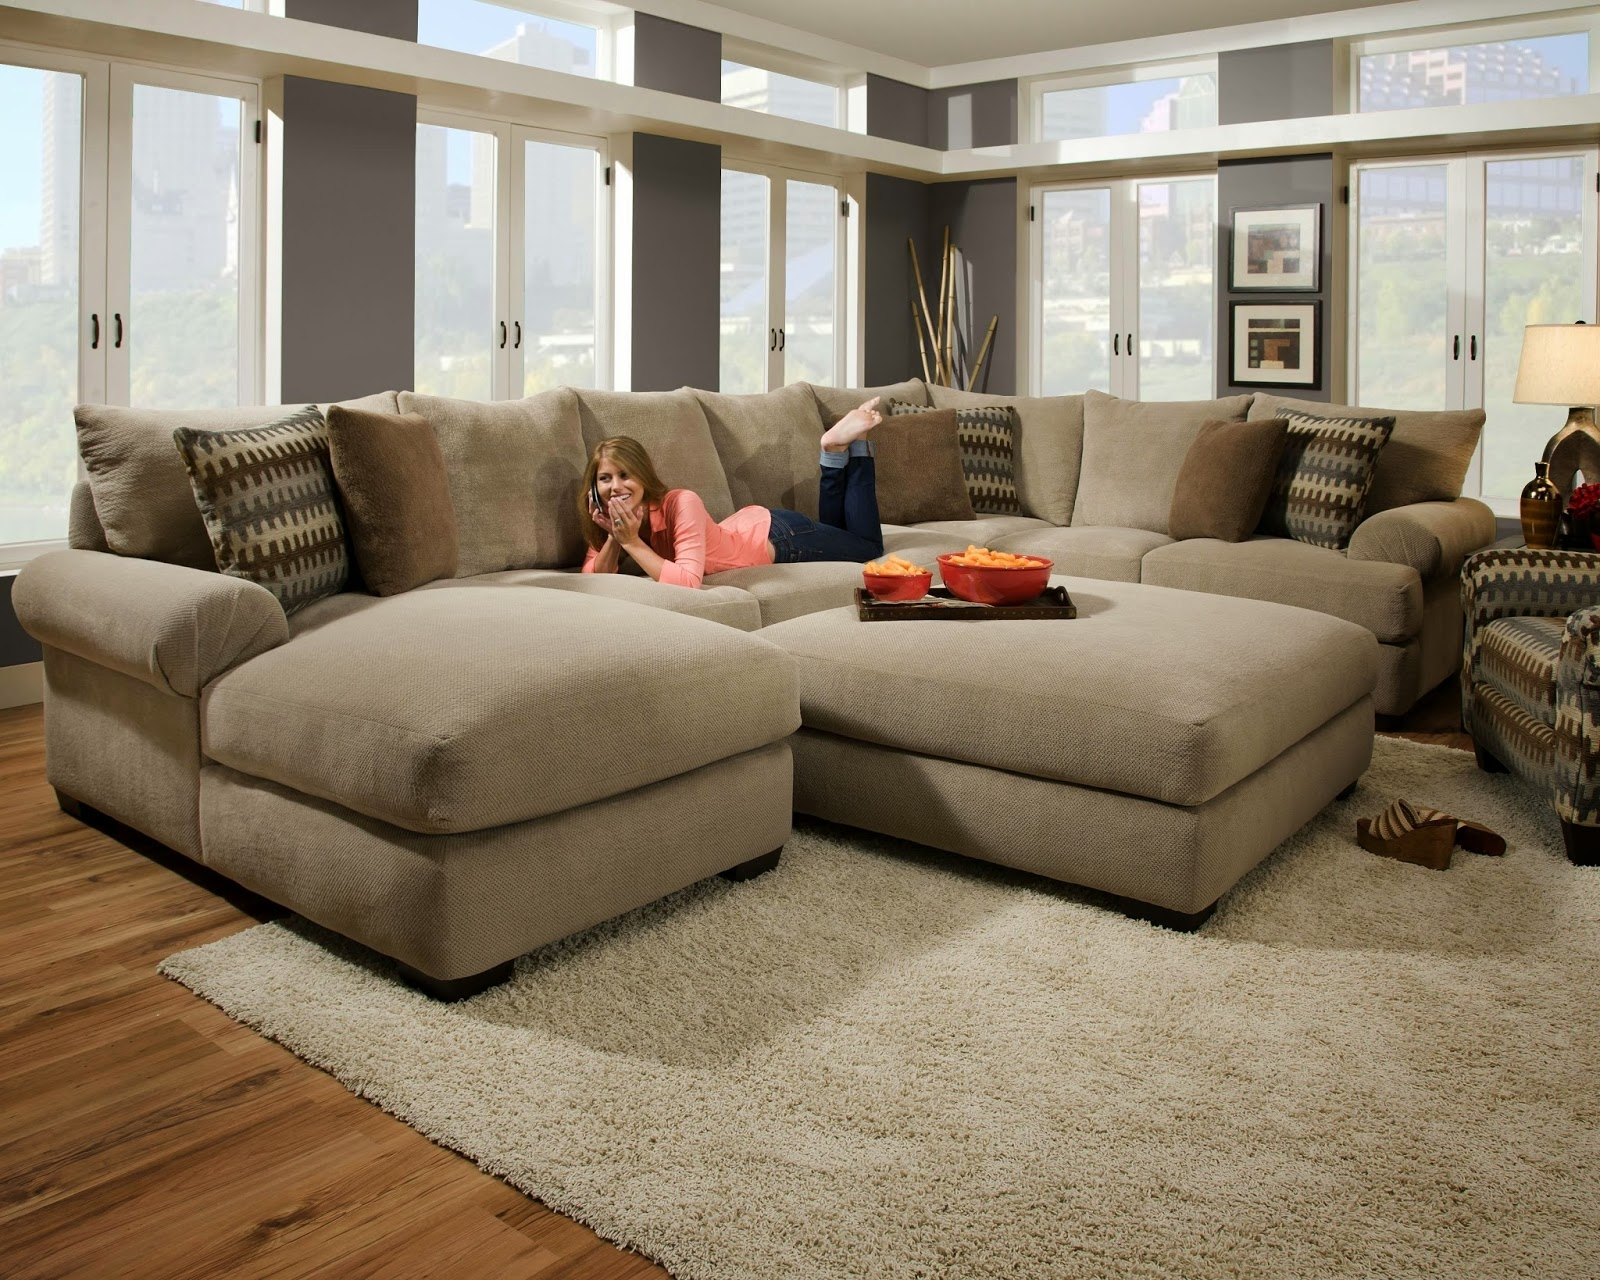 Elegant Microfiber Sectional Sofa With Ottoman